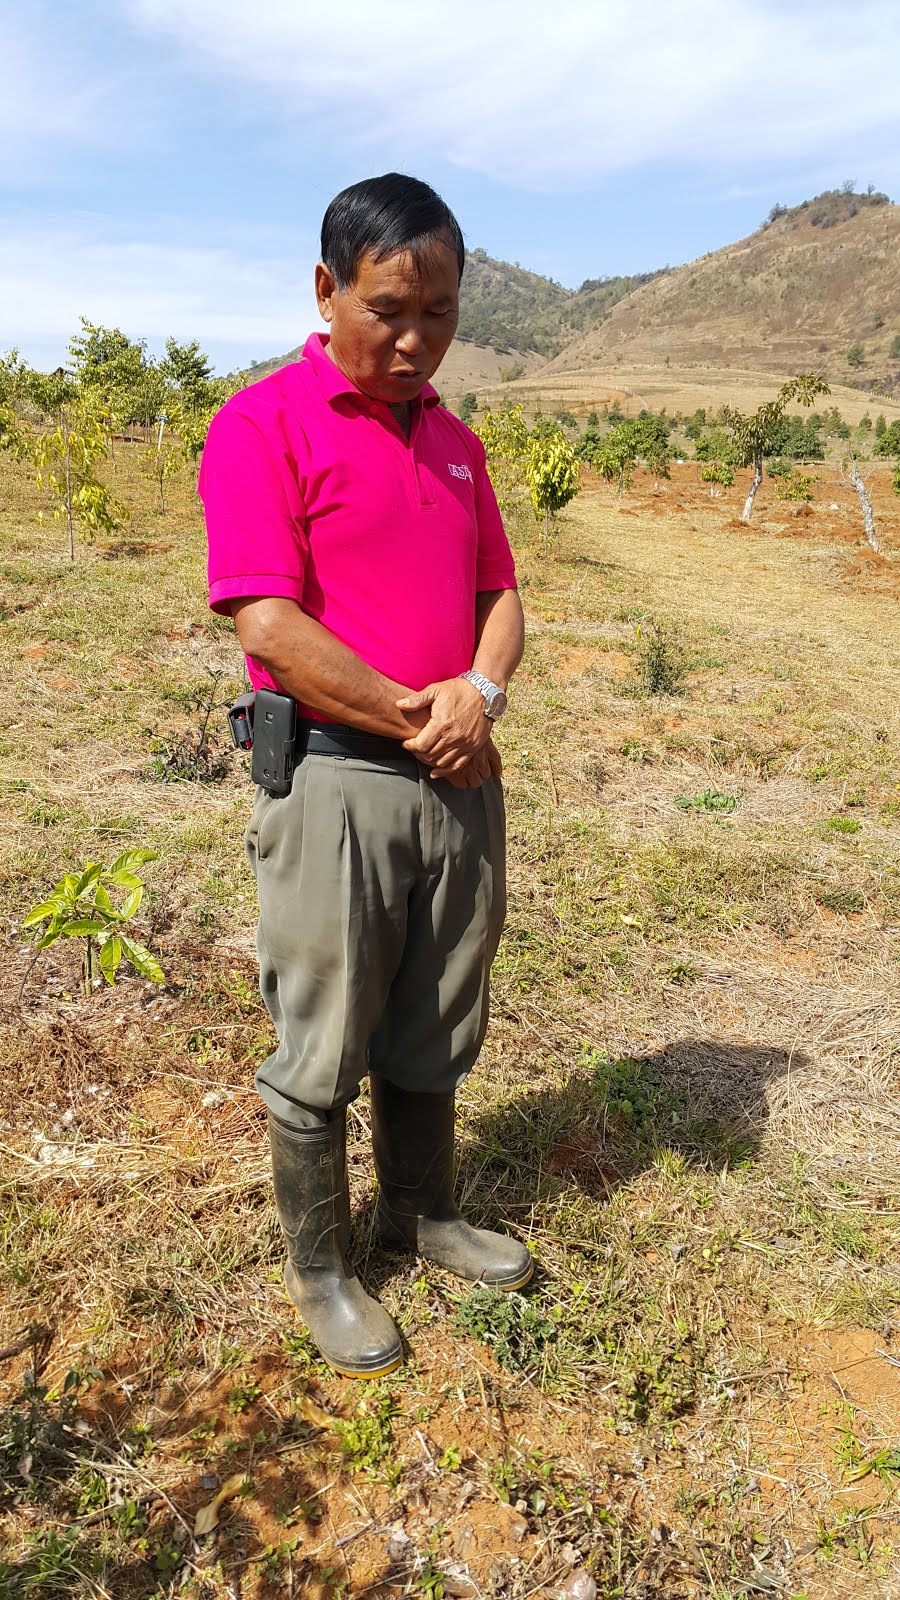 Tim's friend, U Khun Maung Myint, a tree farmer